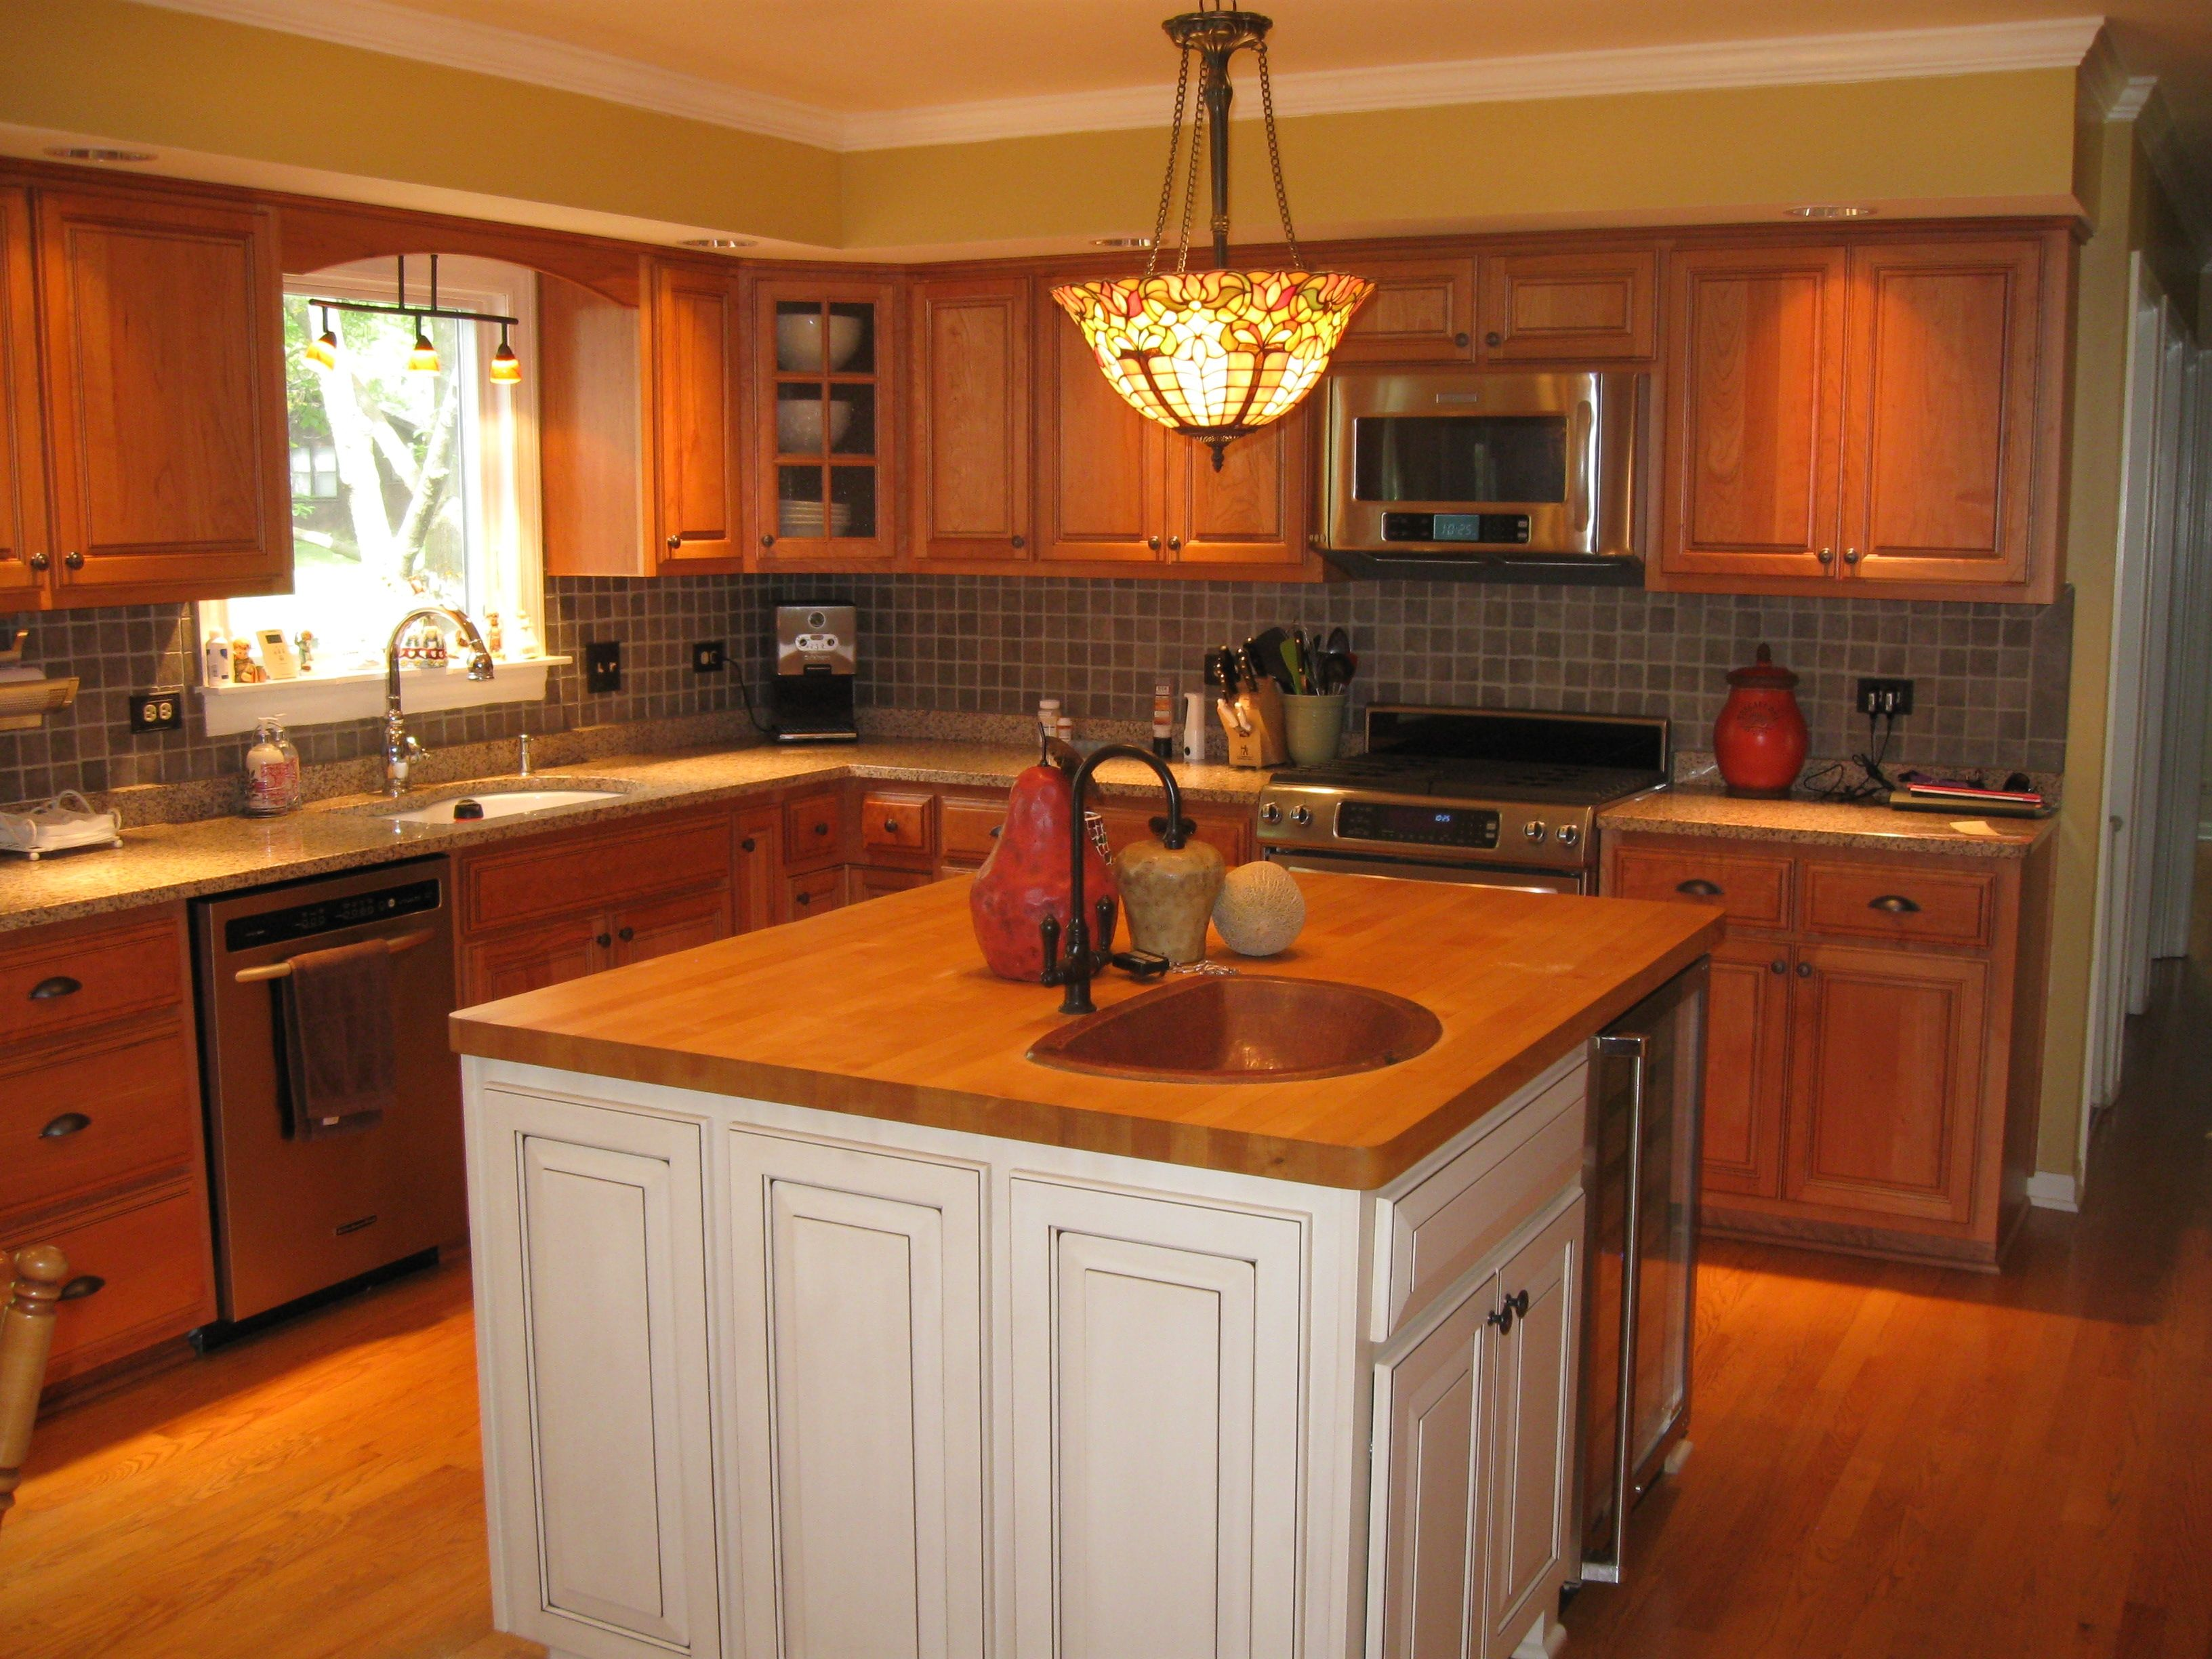 Kitchen Cabinets With Soffit Above | Kitchen soffit ...